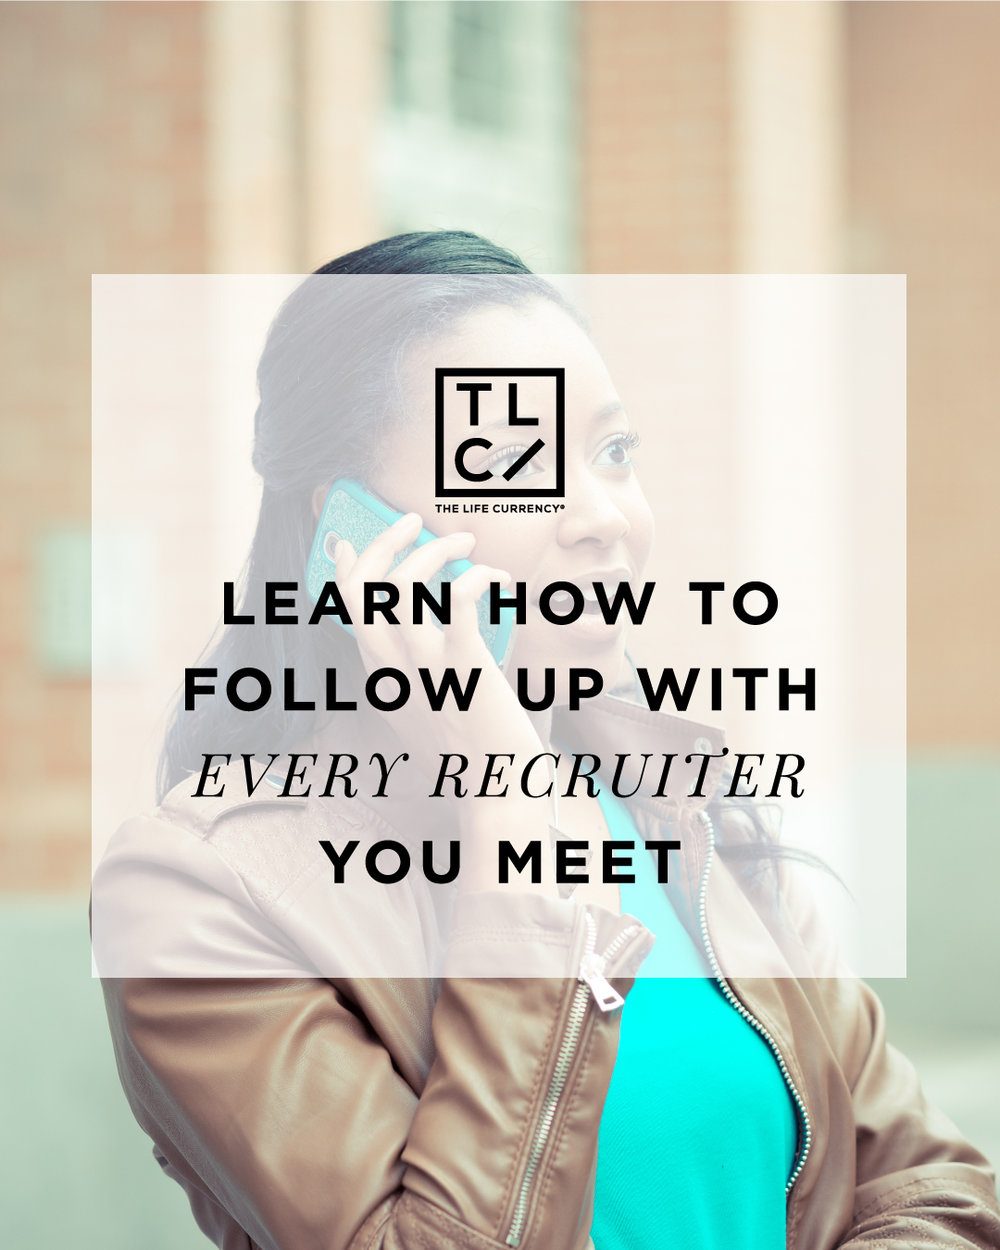 5 Effective Ways to Follow Up With a Recruiter